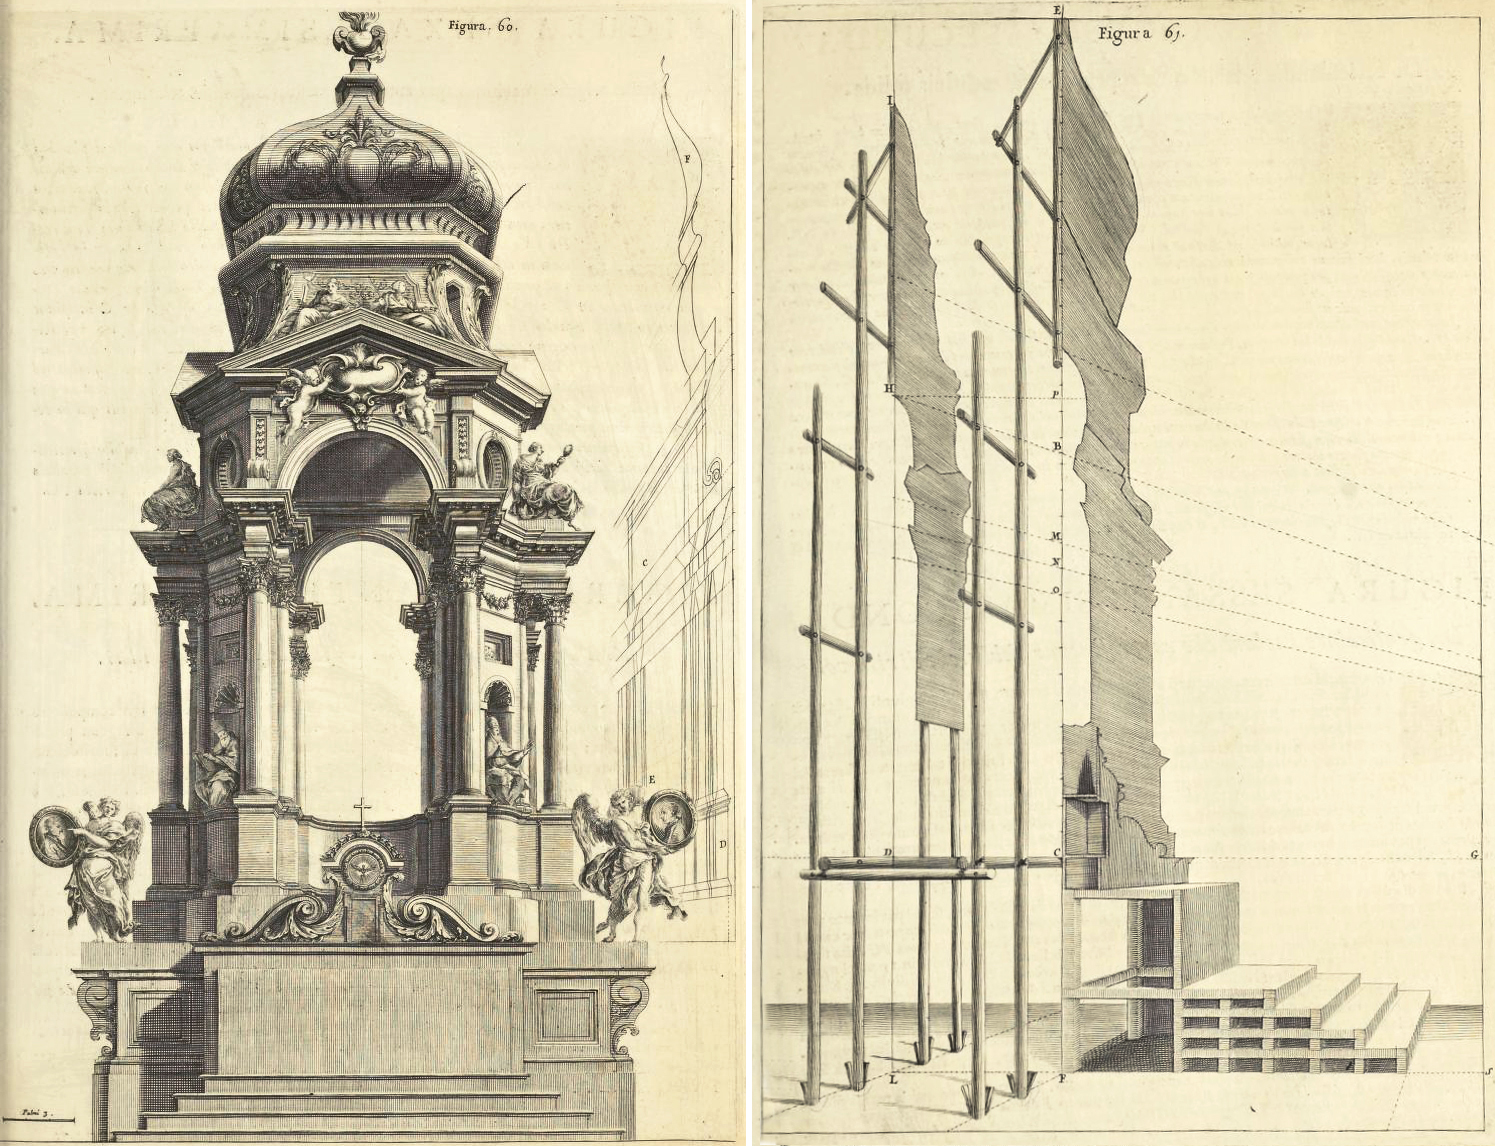 """Andrea Pozzo, Perspectiva Pictorum et Architectorum, vol. I (Rome, 1693), Figures 60 and 61. Getty Research Institute"""